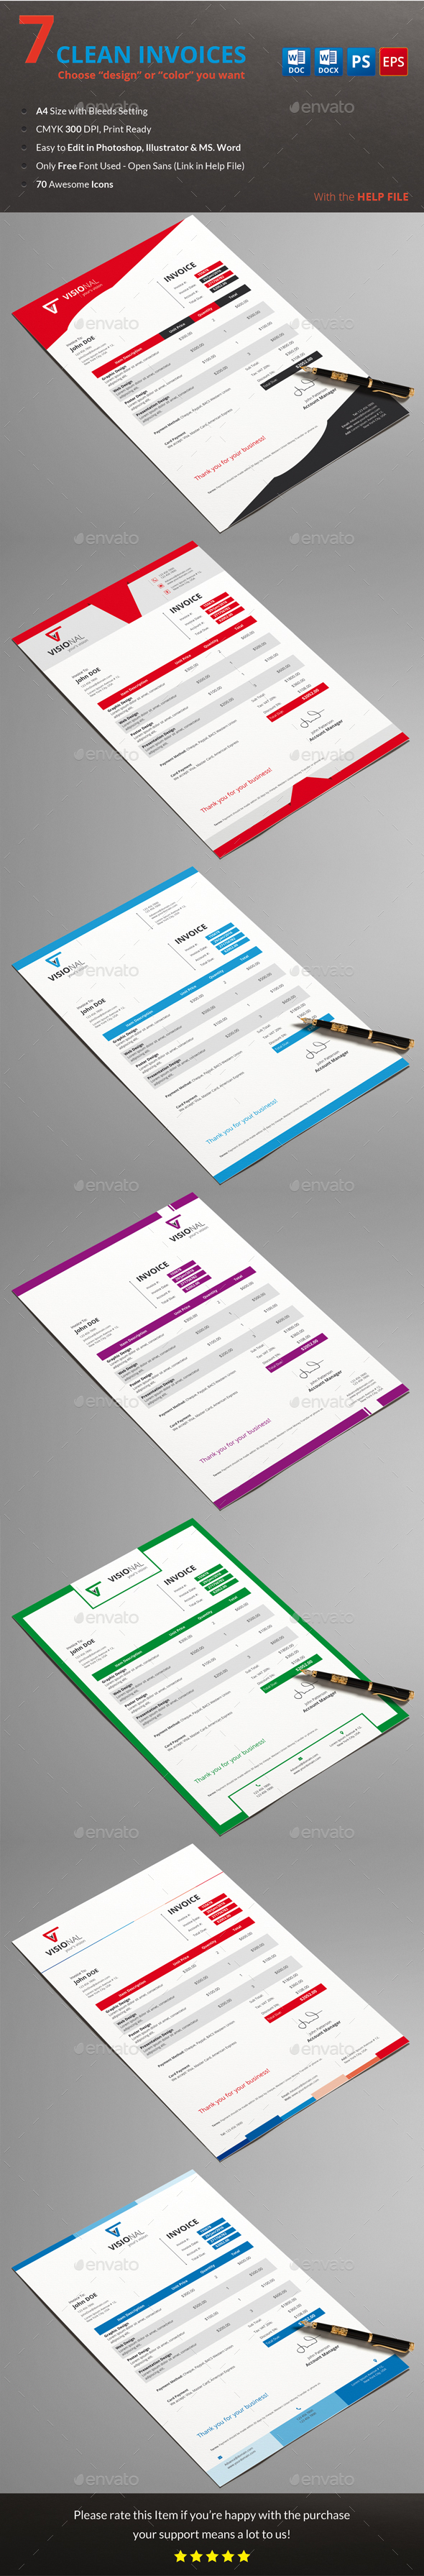 Invoice Photoshop Psd Red Psd Available Here Invoicing Print Templates Proposal Templates